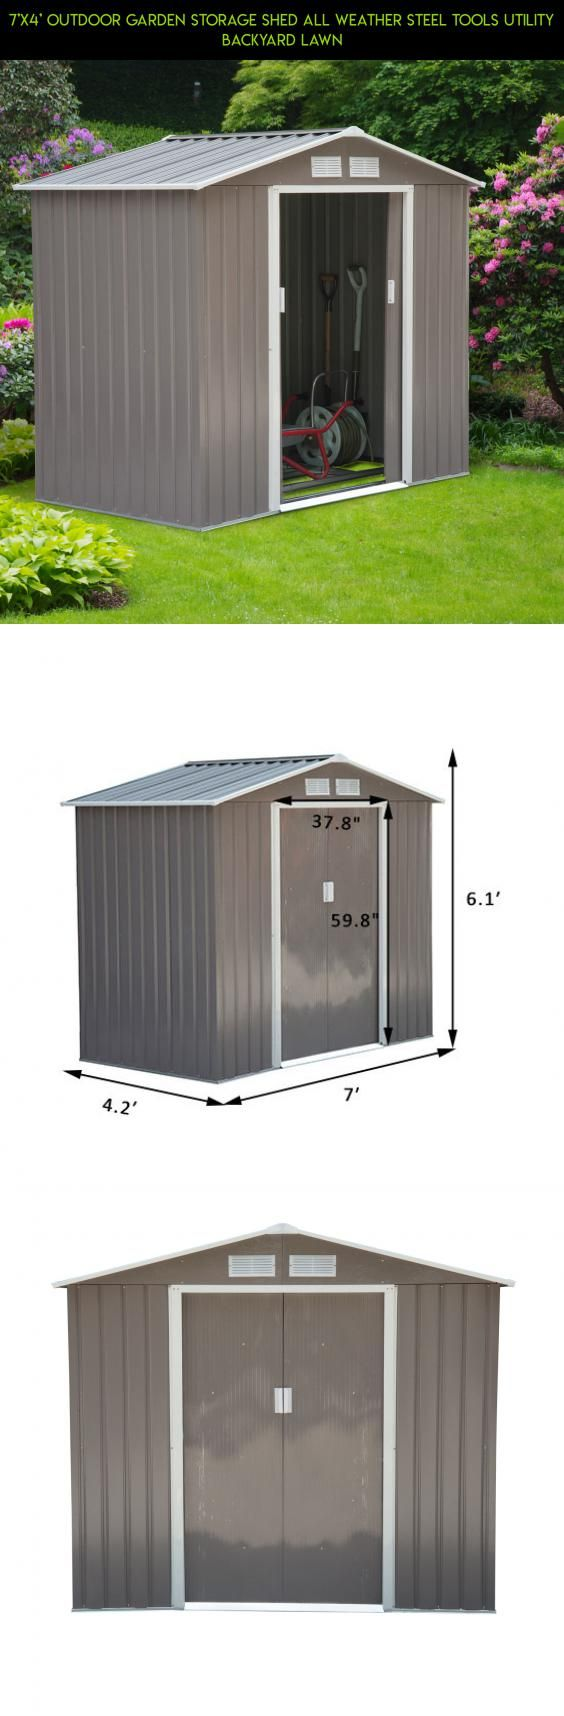 7'x4' Outdoor Garden Storage Shed All Weather Steel Tools Utility Backyard Lawn #tech #plans #storage #parts #fpv #drone #kit #technology #shopping #gadgets #camera #shed #racing #products